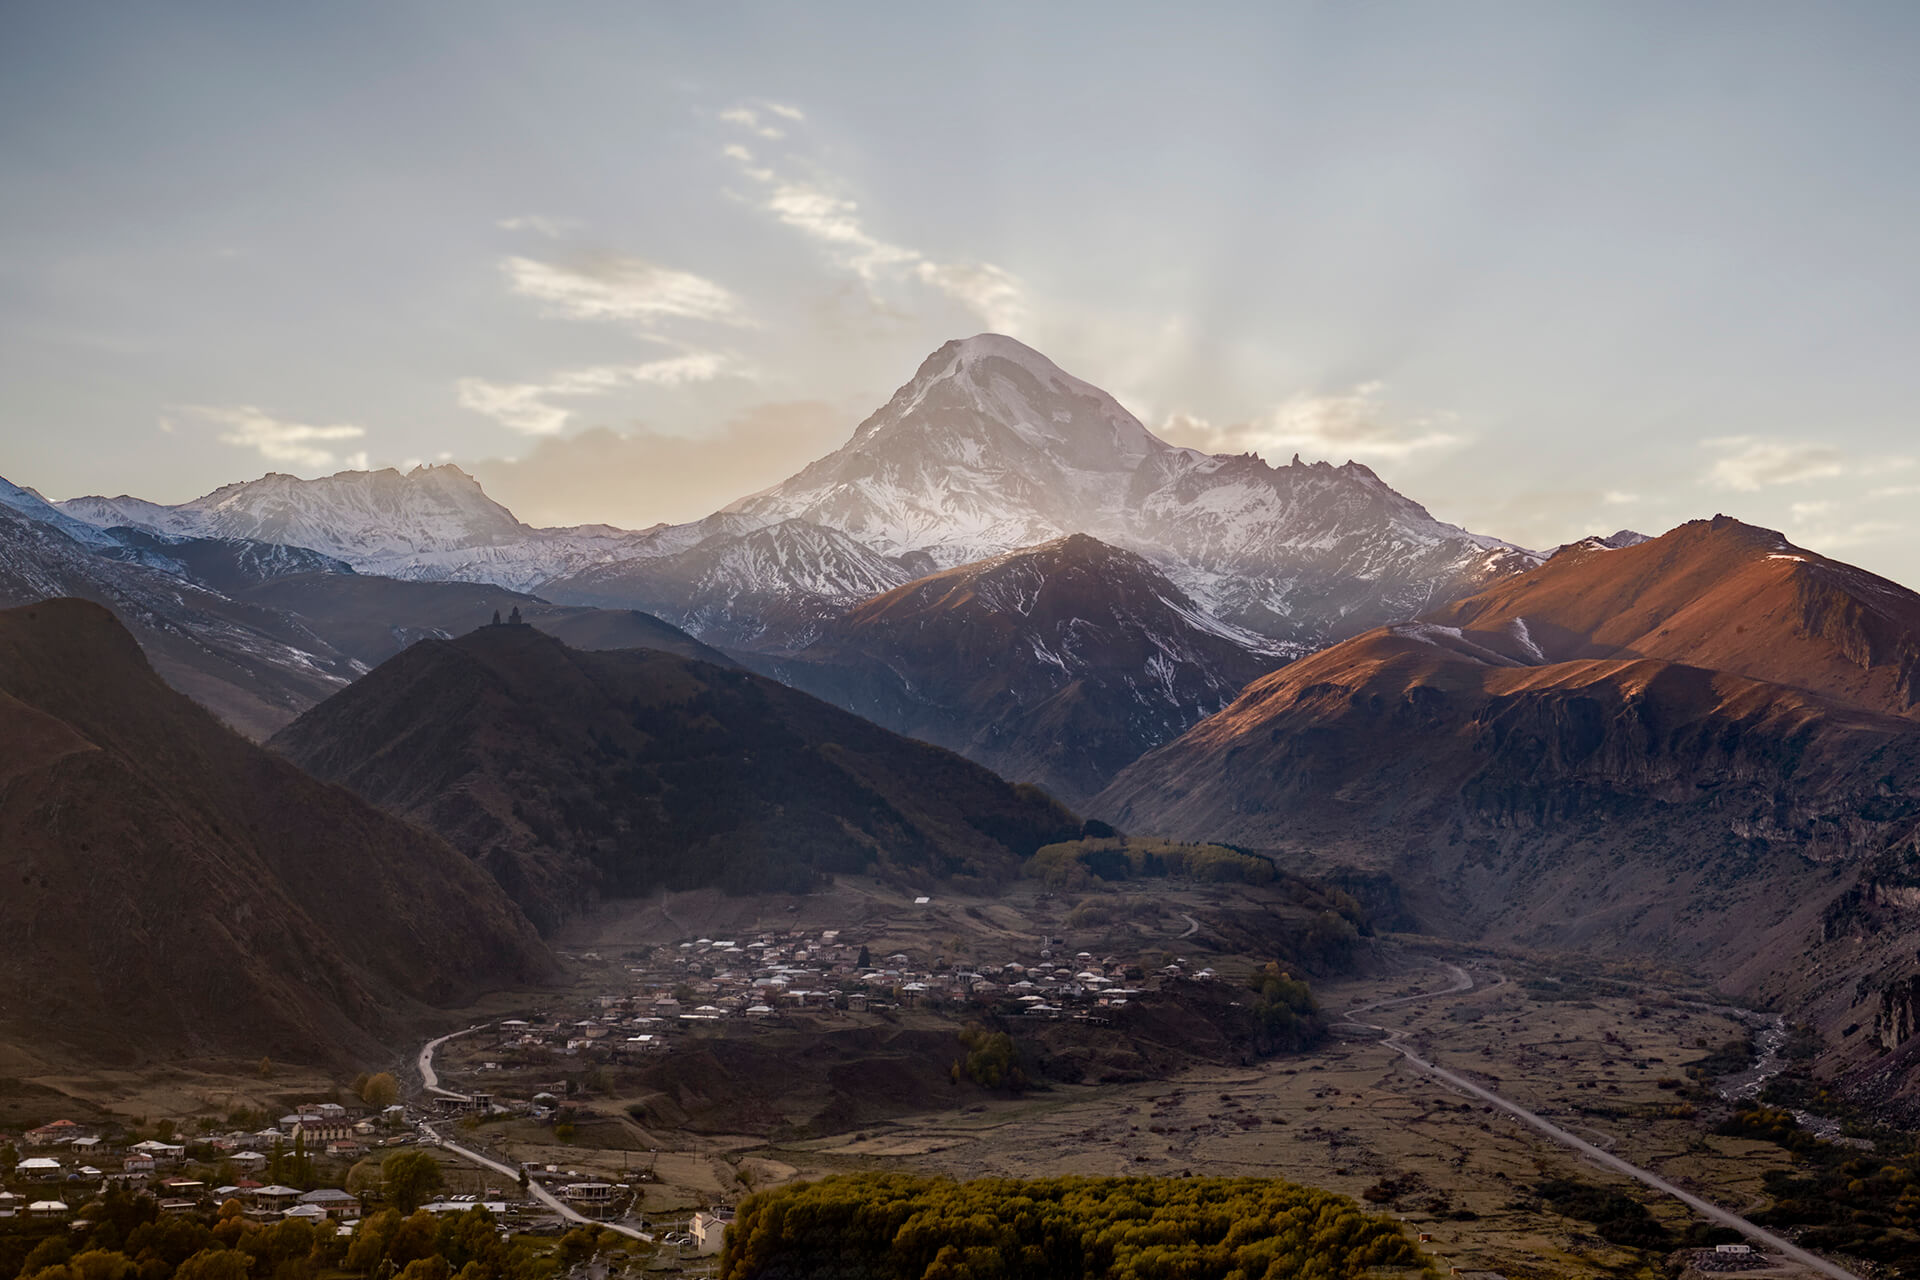 One day tour to Kazbegi in the Greater Caucasus